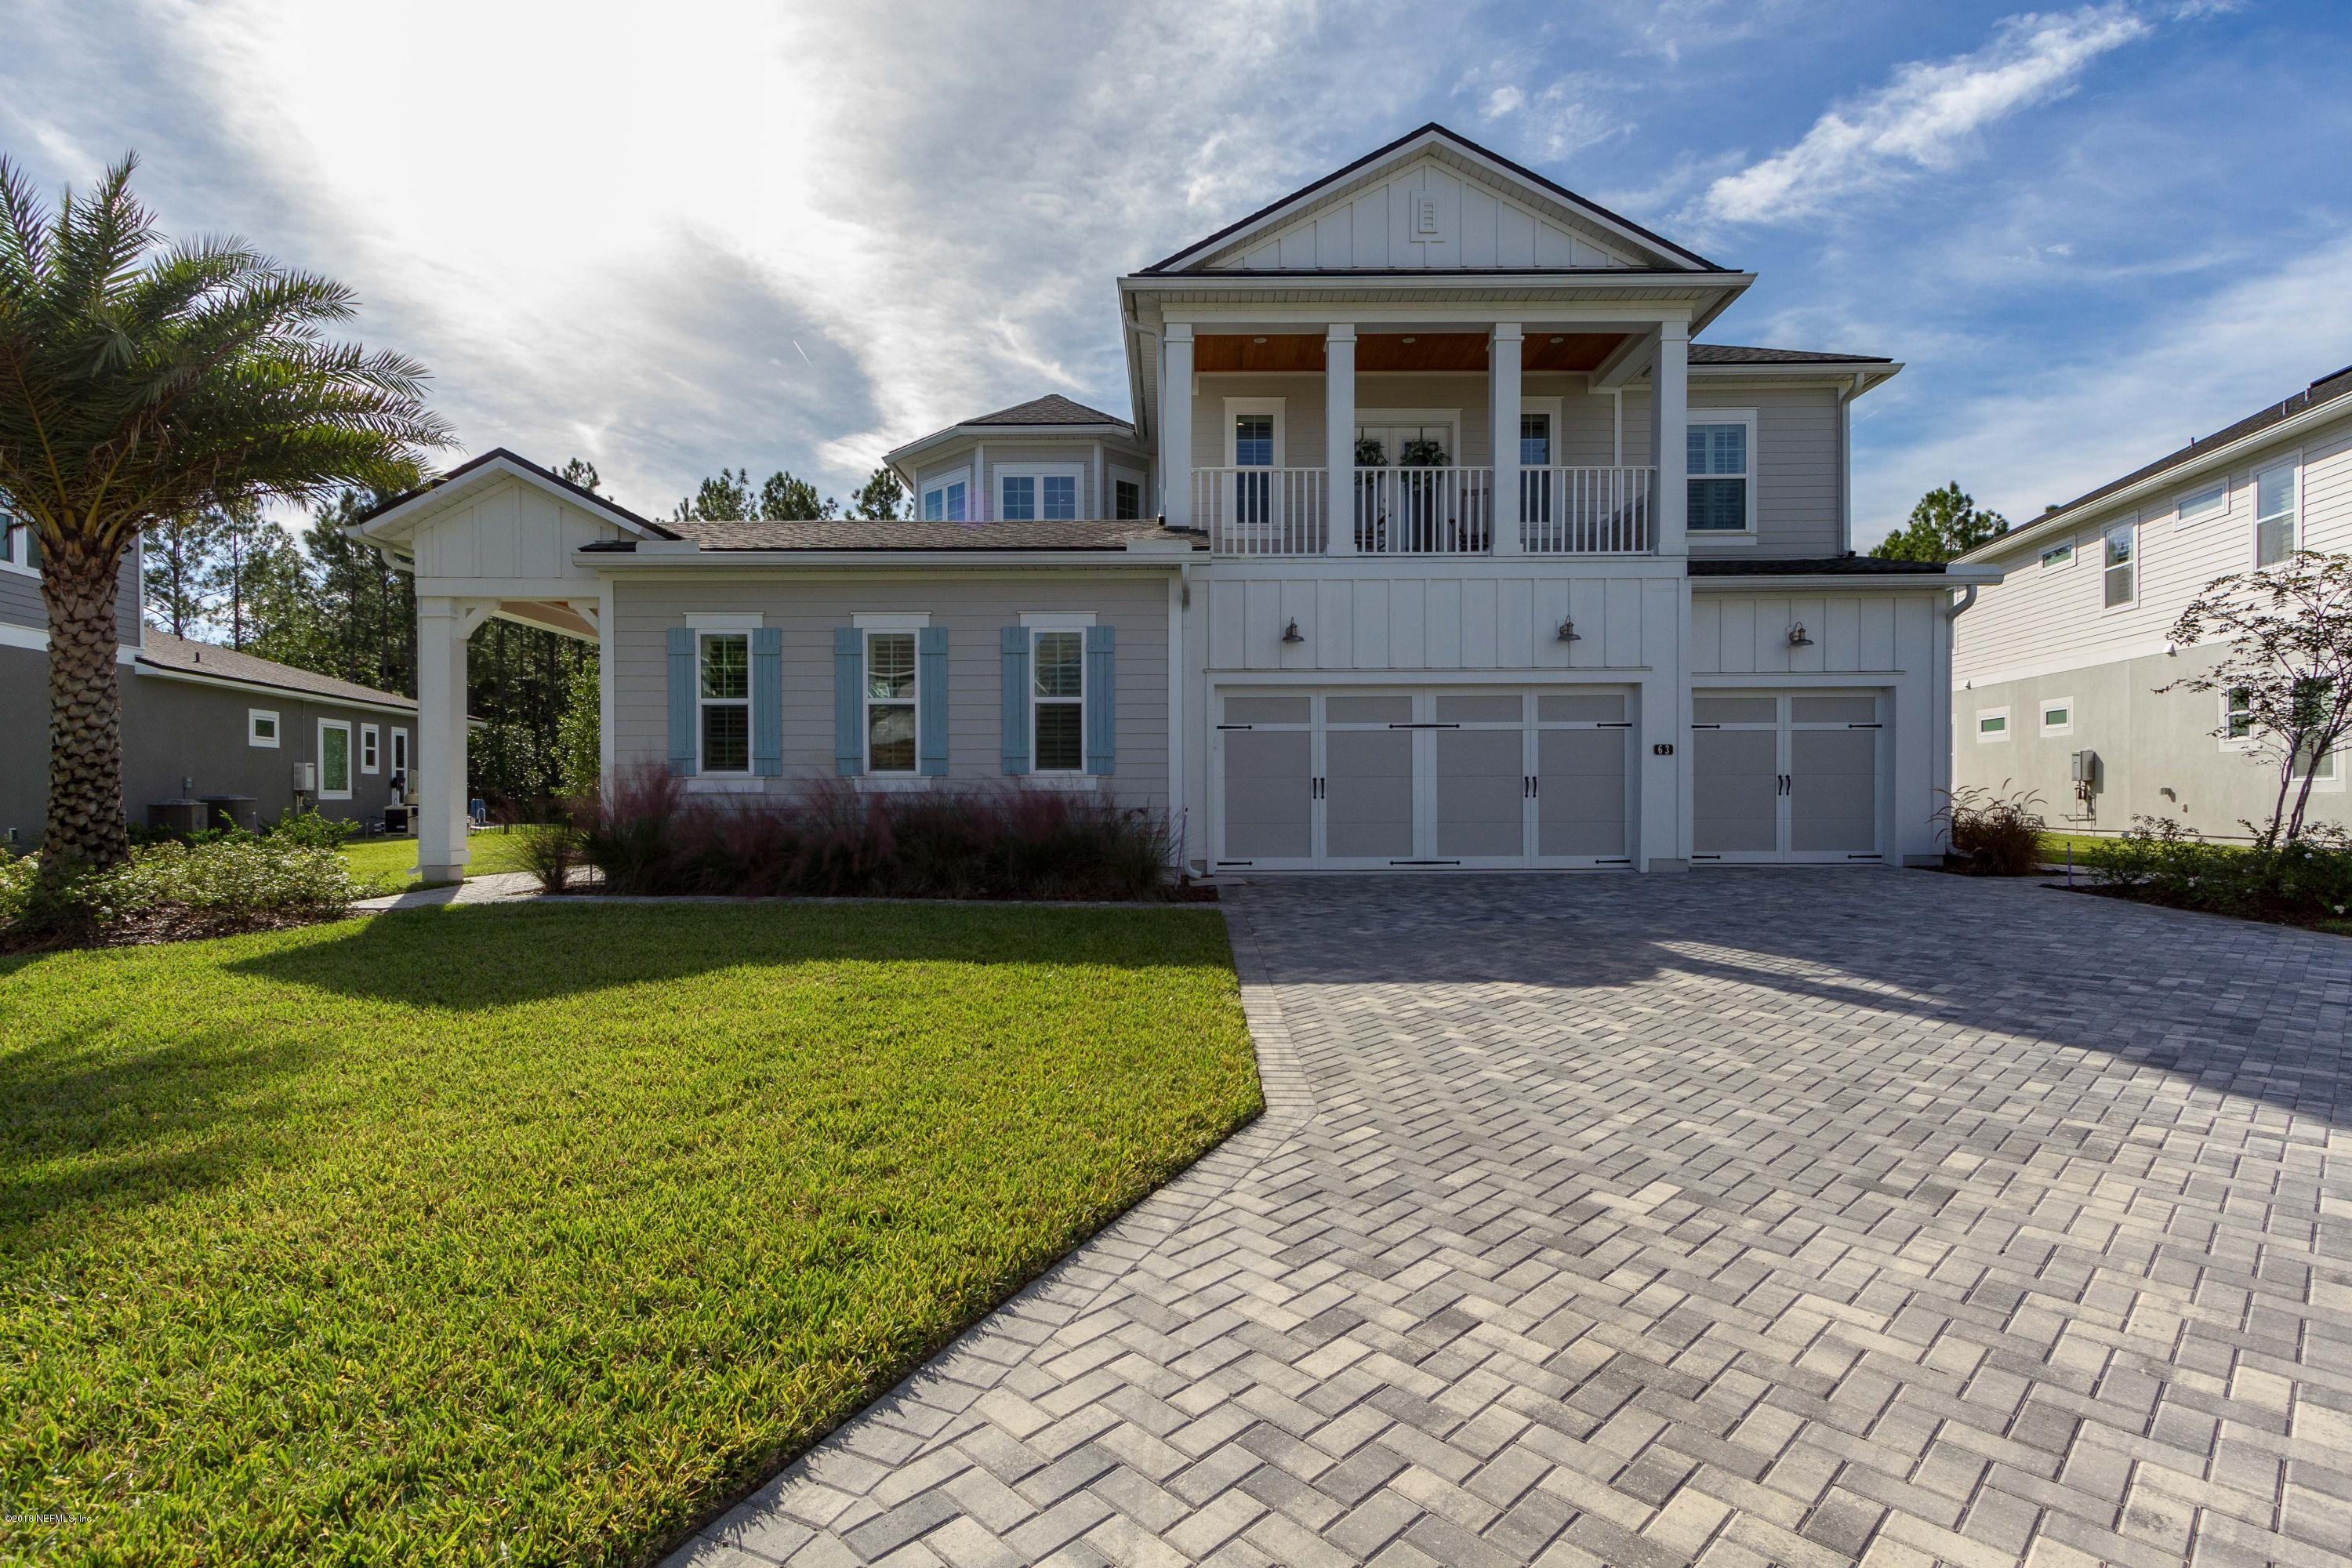 63 BLUE SKY, ST JOHNS, FLORIDA 32259, 5 Bedrooms Bedrooms, ,3 BathroomsBathrooms,Residential - single family,For sale,BLUE SKY,965018